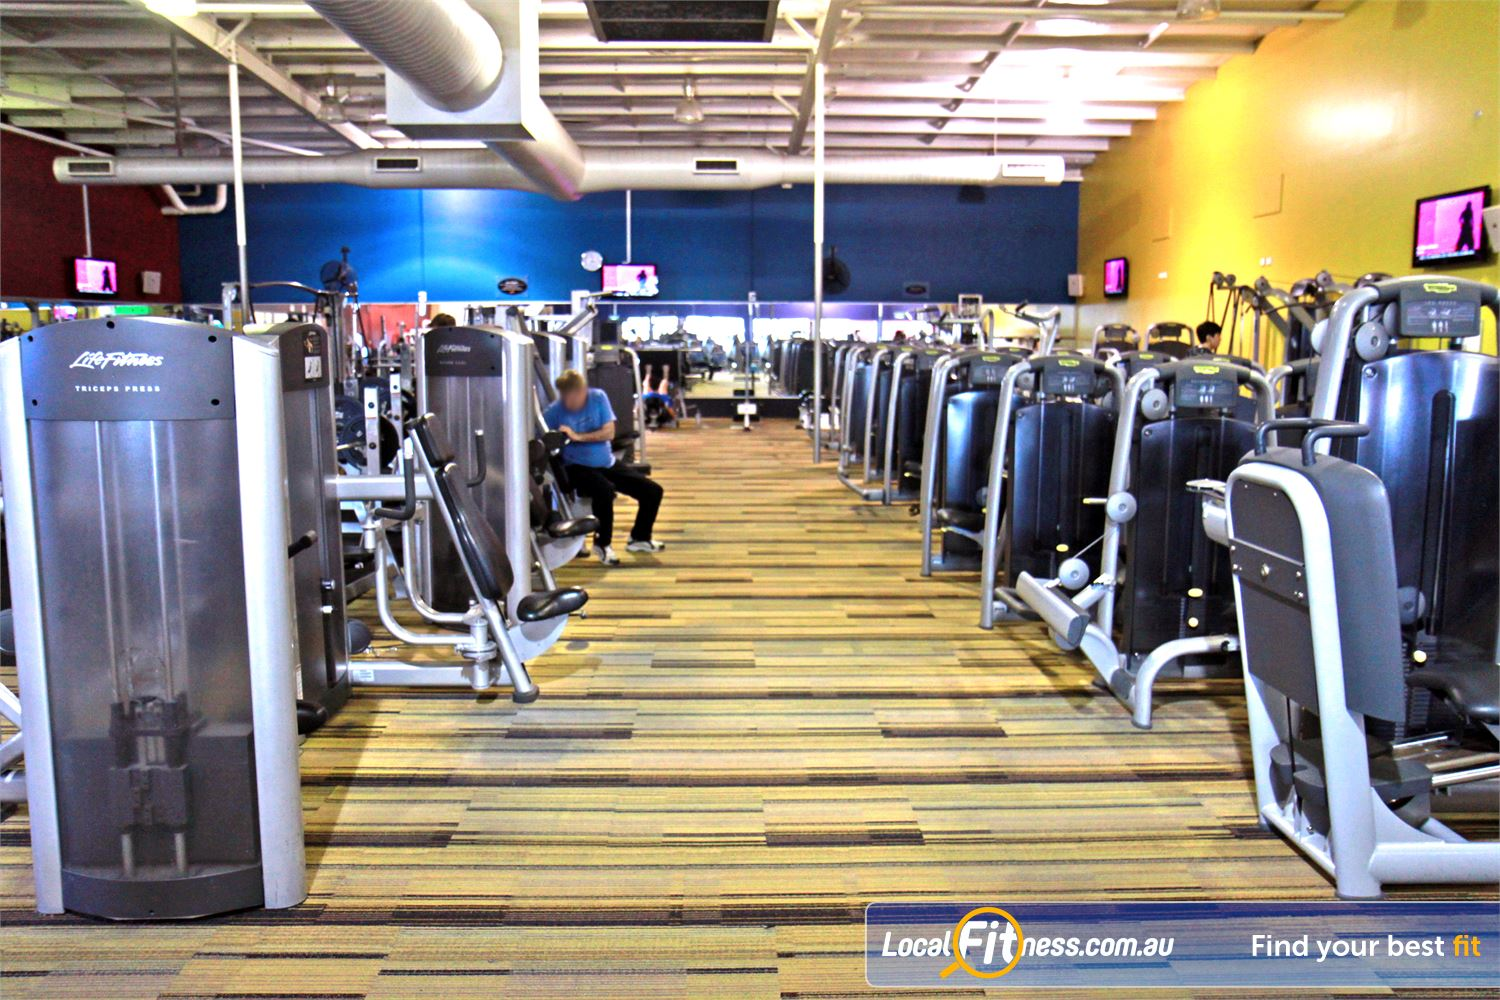 Goodlife Health Clubs Cannington State of the art equipment from Technogym in our Cannington gym.